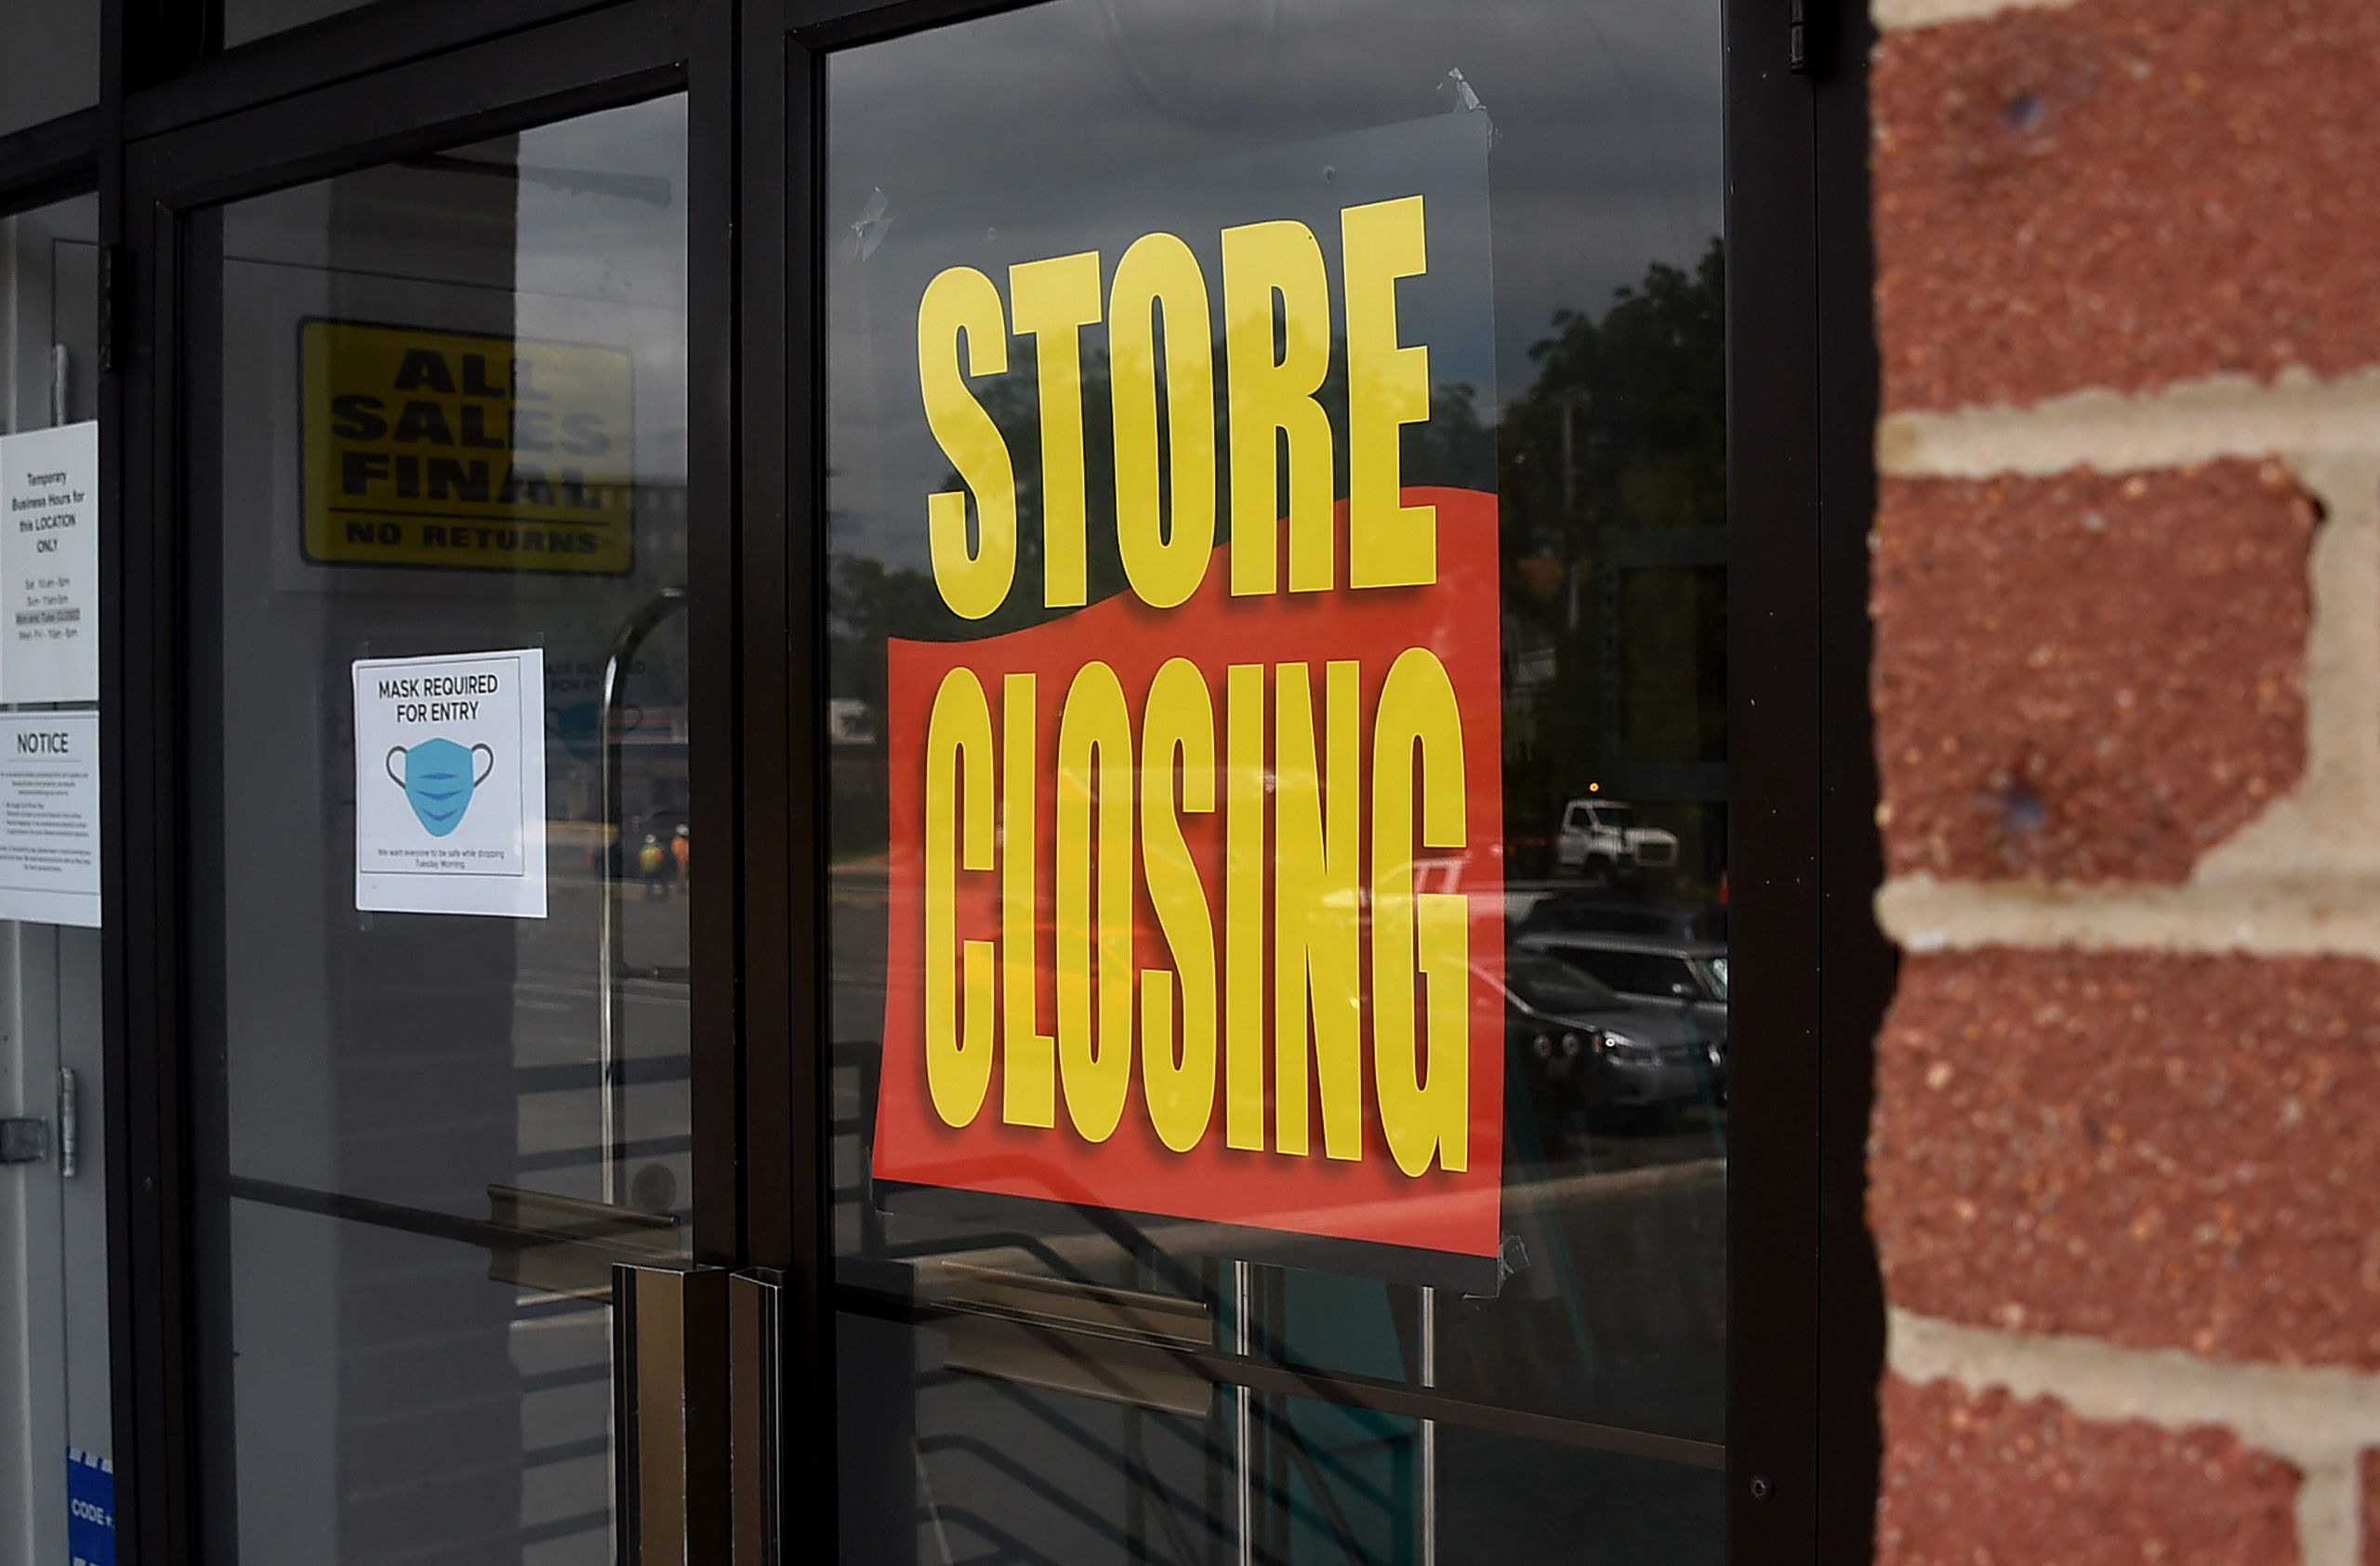 A store displays a sign before closing down permanently as more businesses feel the effects of stay-at-home orders amid the coronavirus pandemic, on June 16, 2020 in Arlington, Virginia. (Photo by Olivier Douliery/AFP via Getty Images)